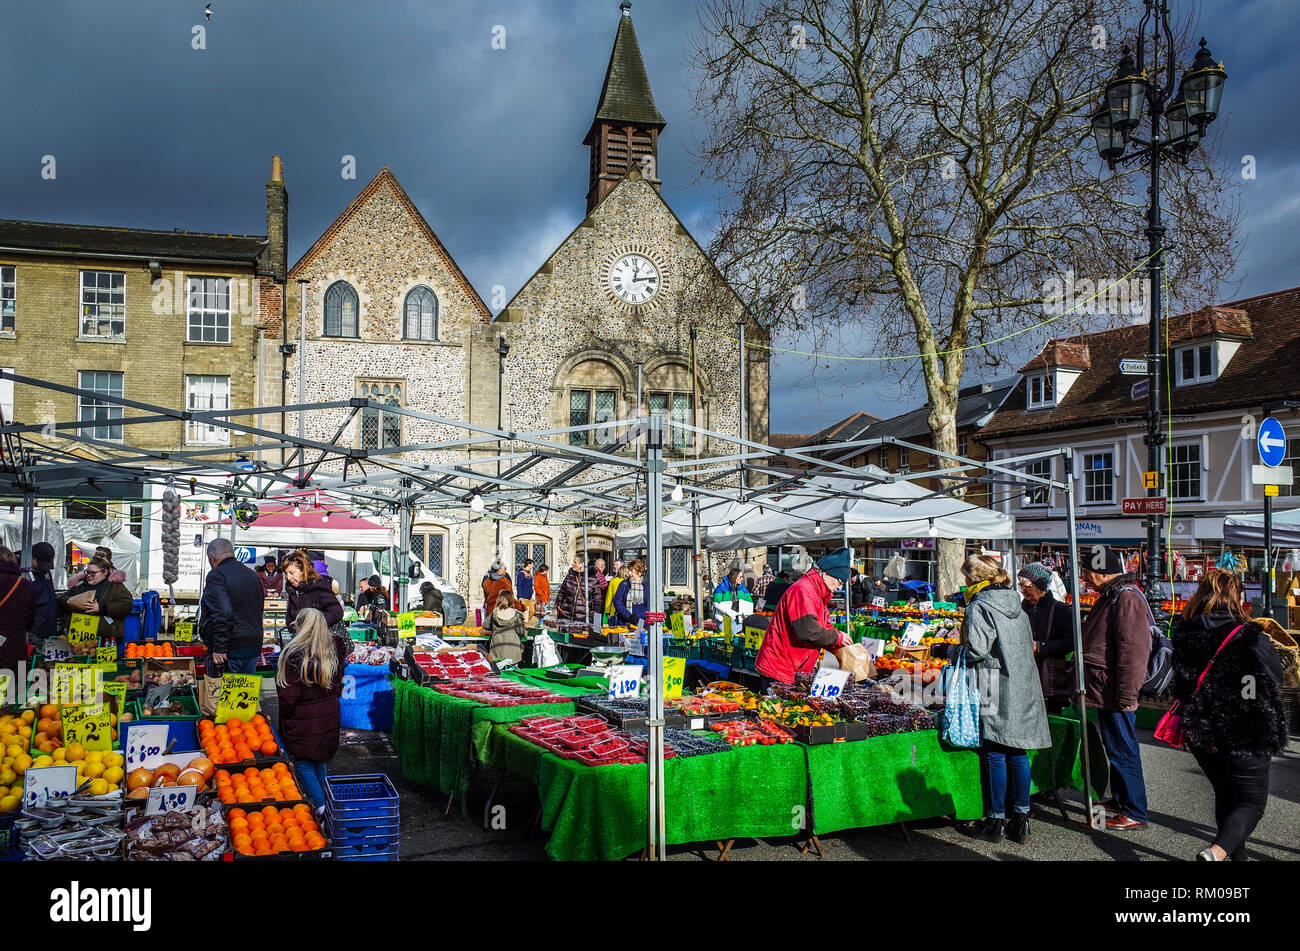 Bury St Edmunds Market - the thriving market in the Suffolk town of Bury St Edmunds in East Anglia UK - Stock Image